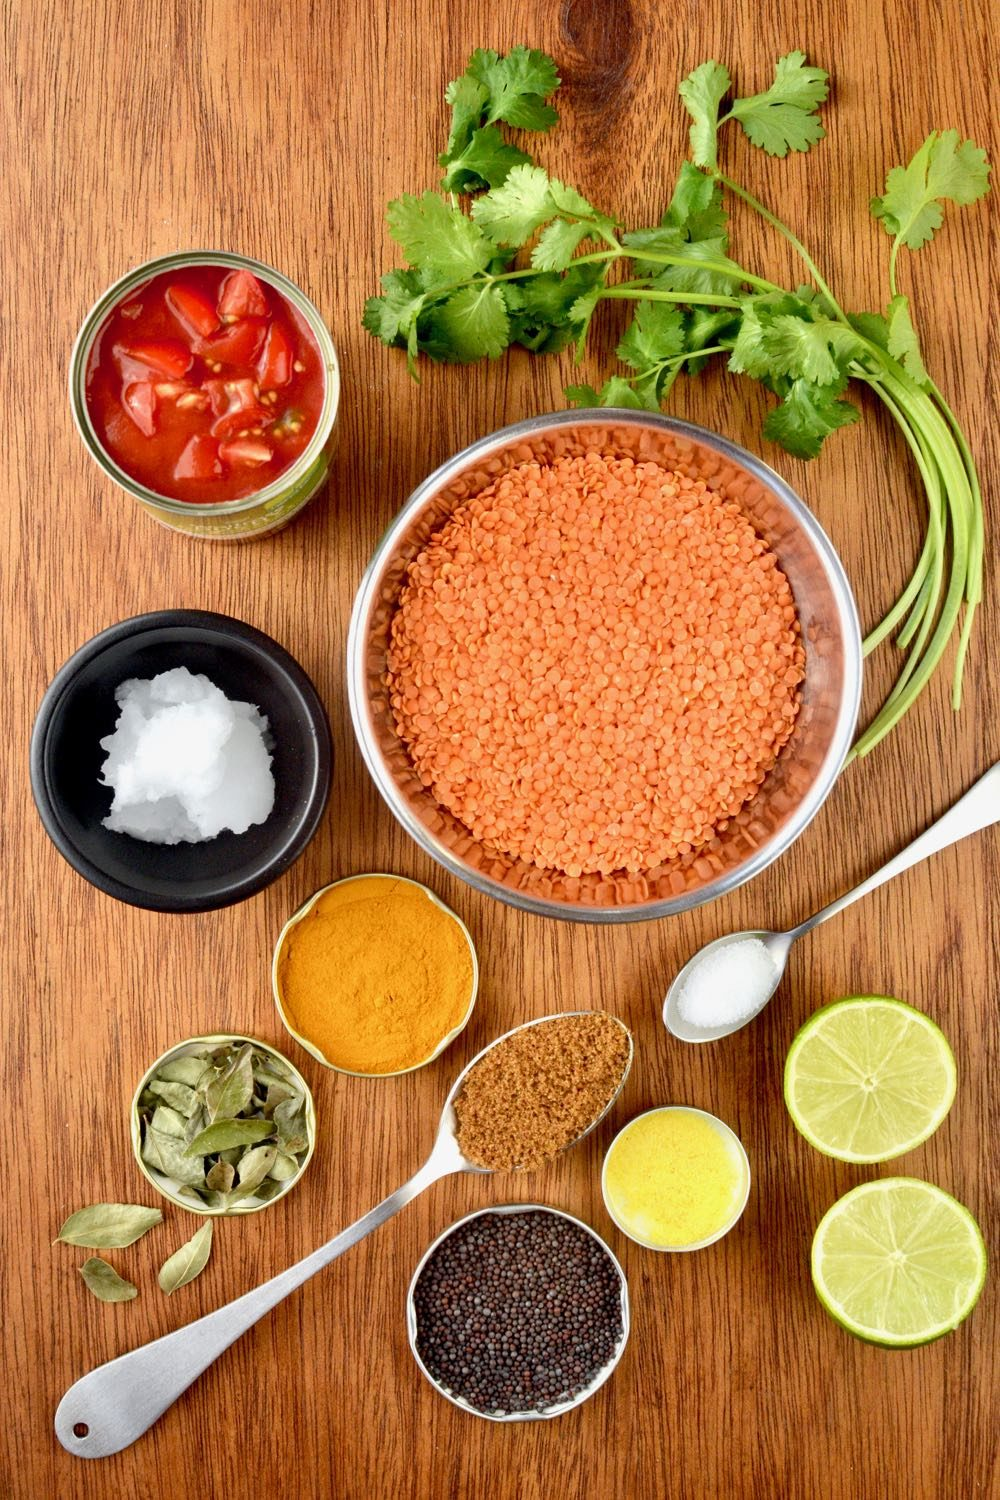 All the ingredients you need for this vegan red lentil dahl - lentils, spices, coconut oil, coriander, lime and tomatoes